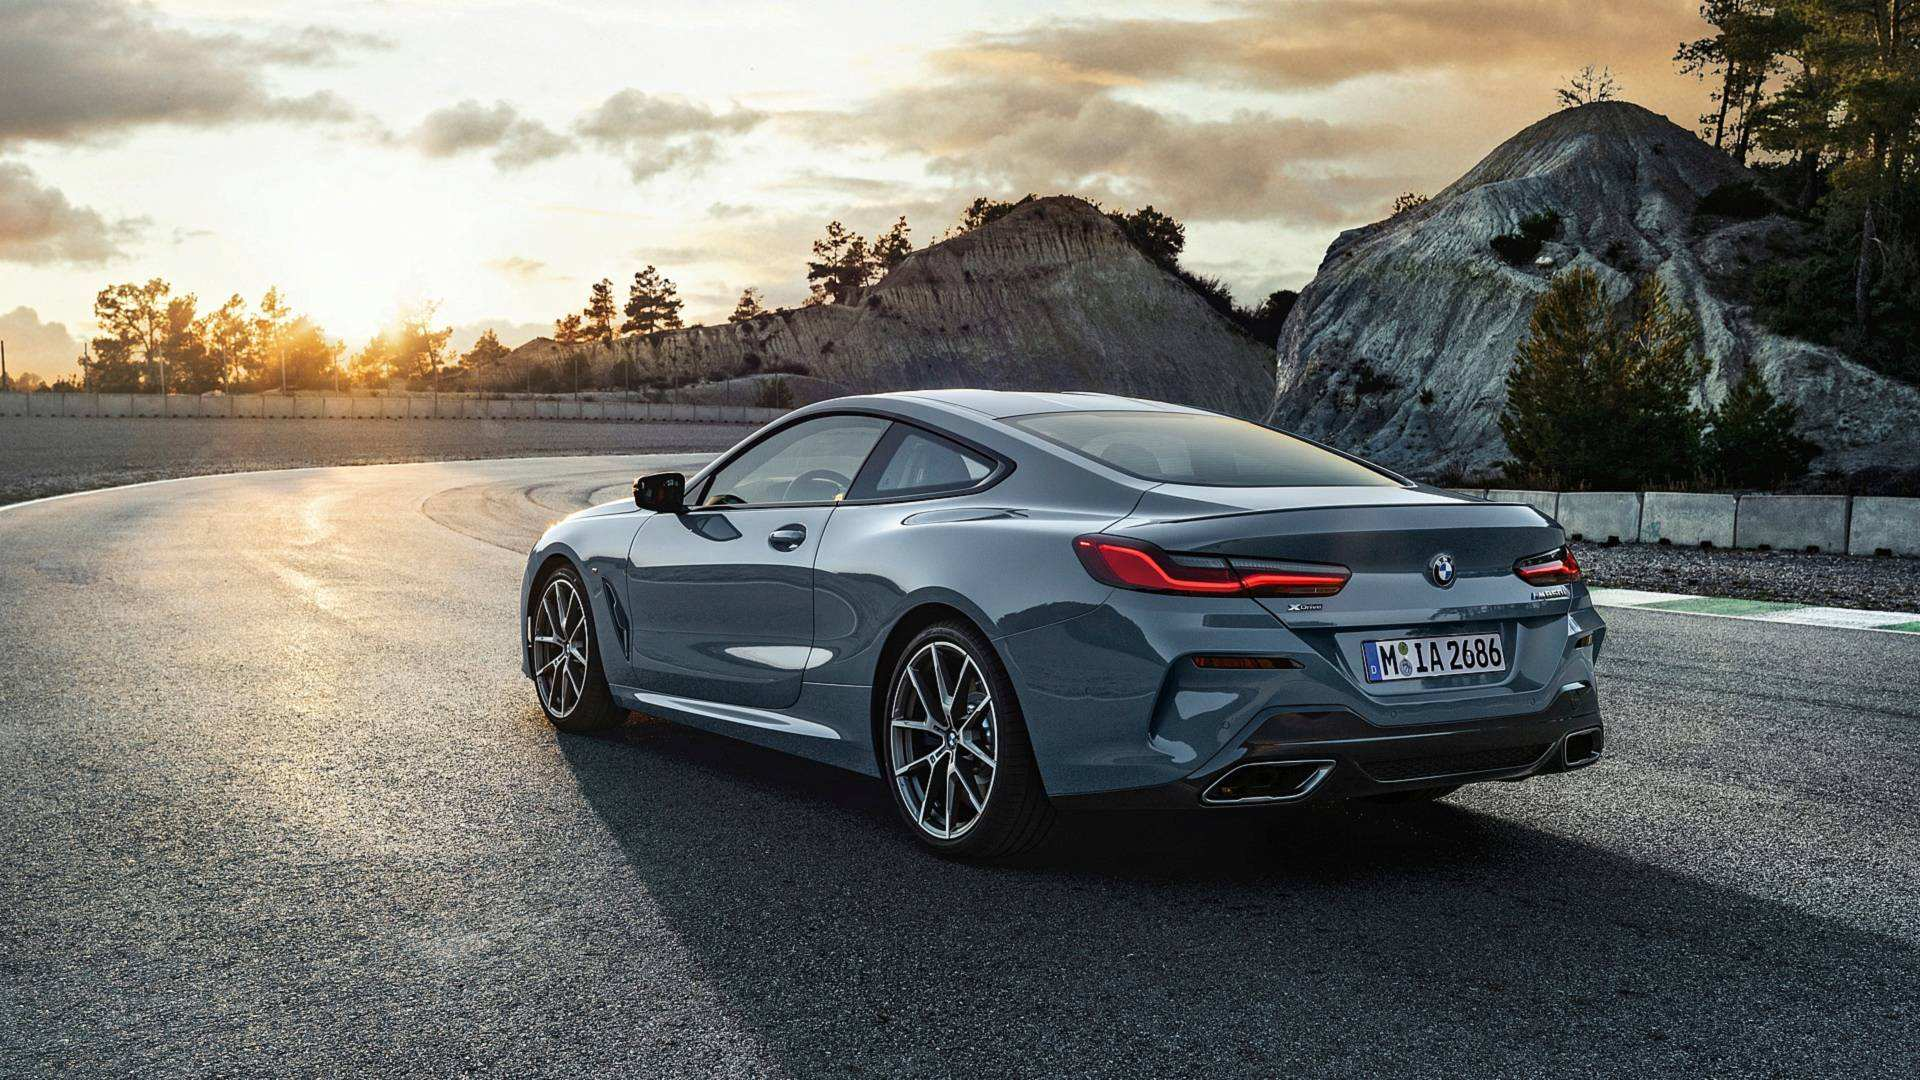 93 New 2019 Bmw 8 Series Release Date Review